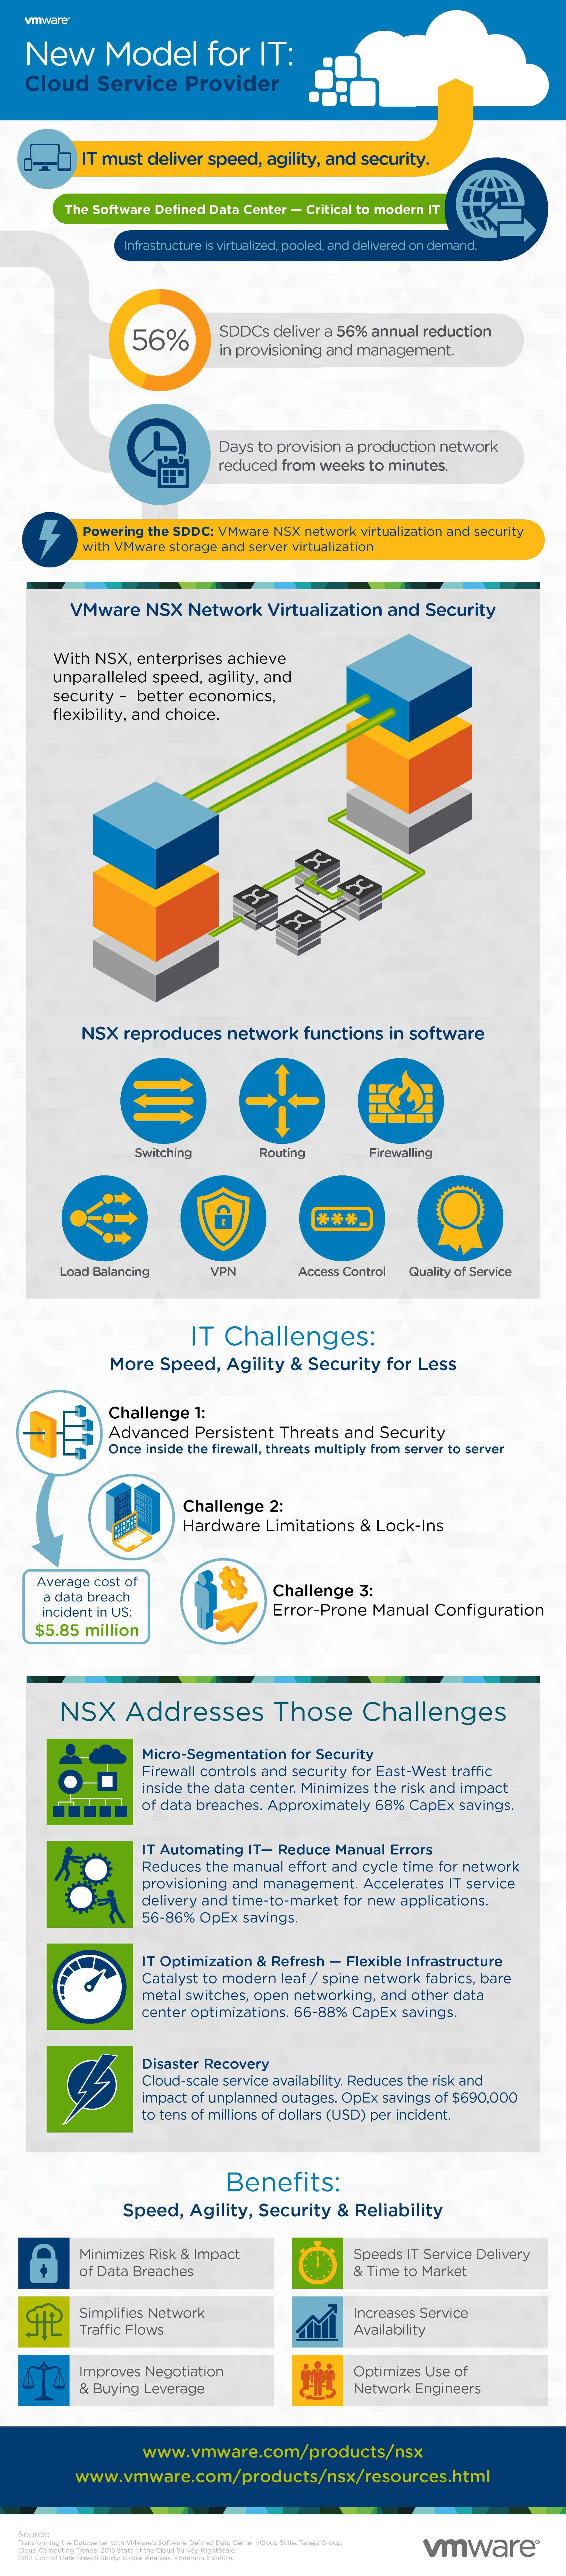 infographic displaying new model for vmware it